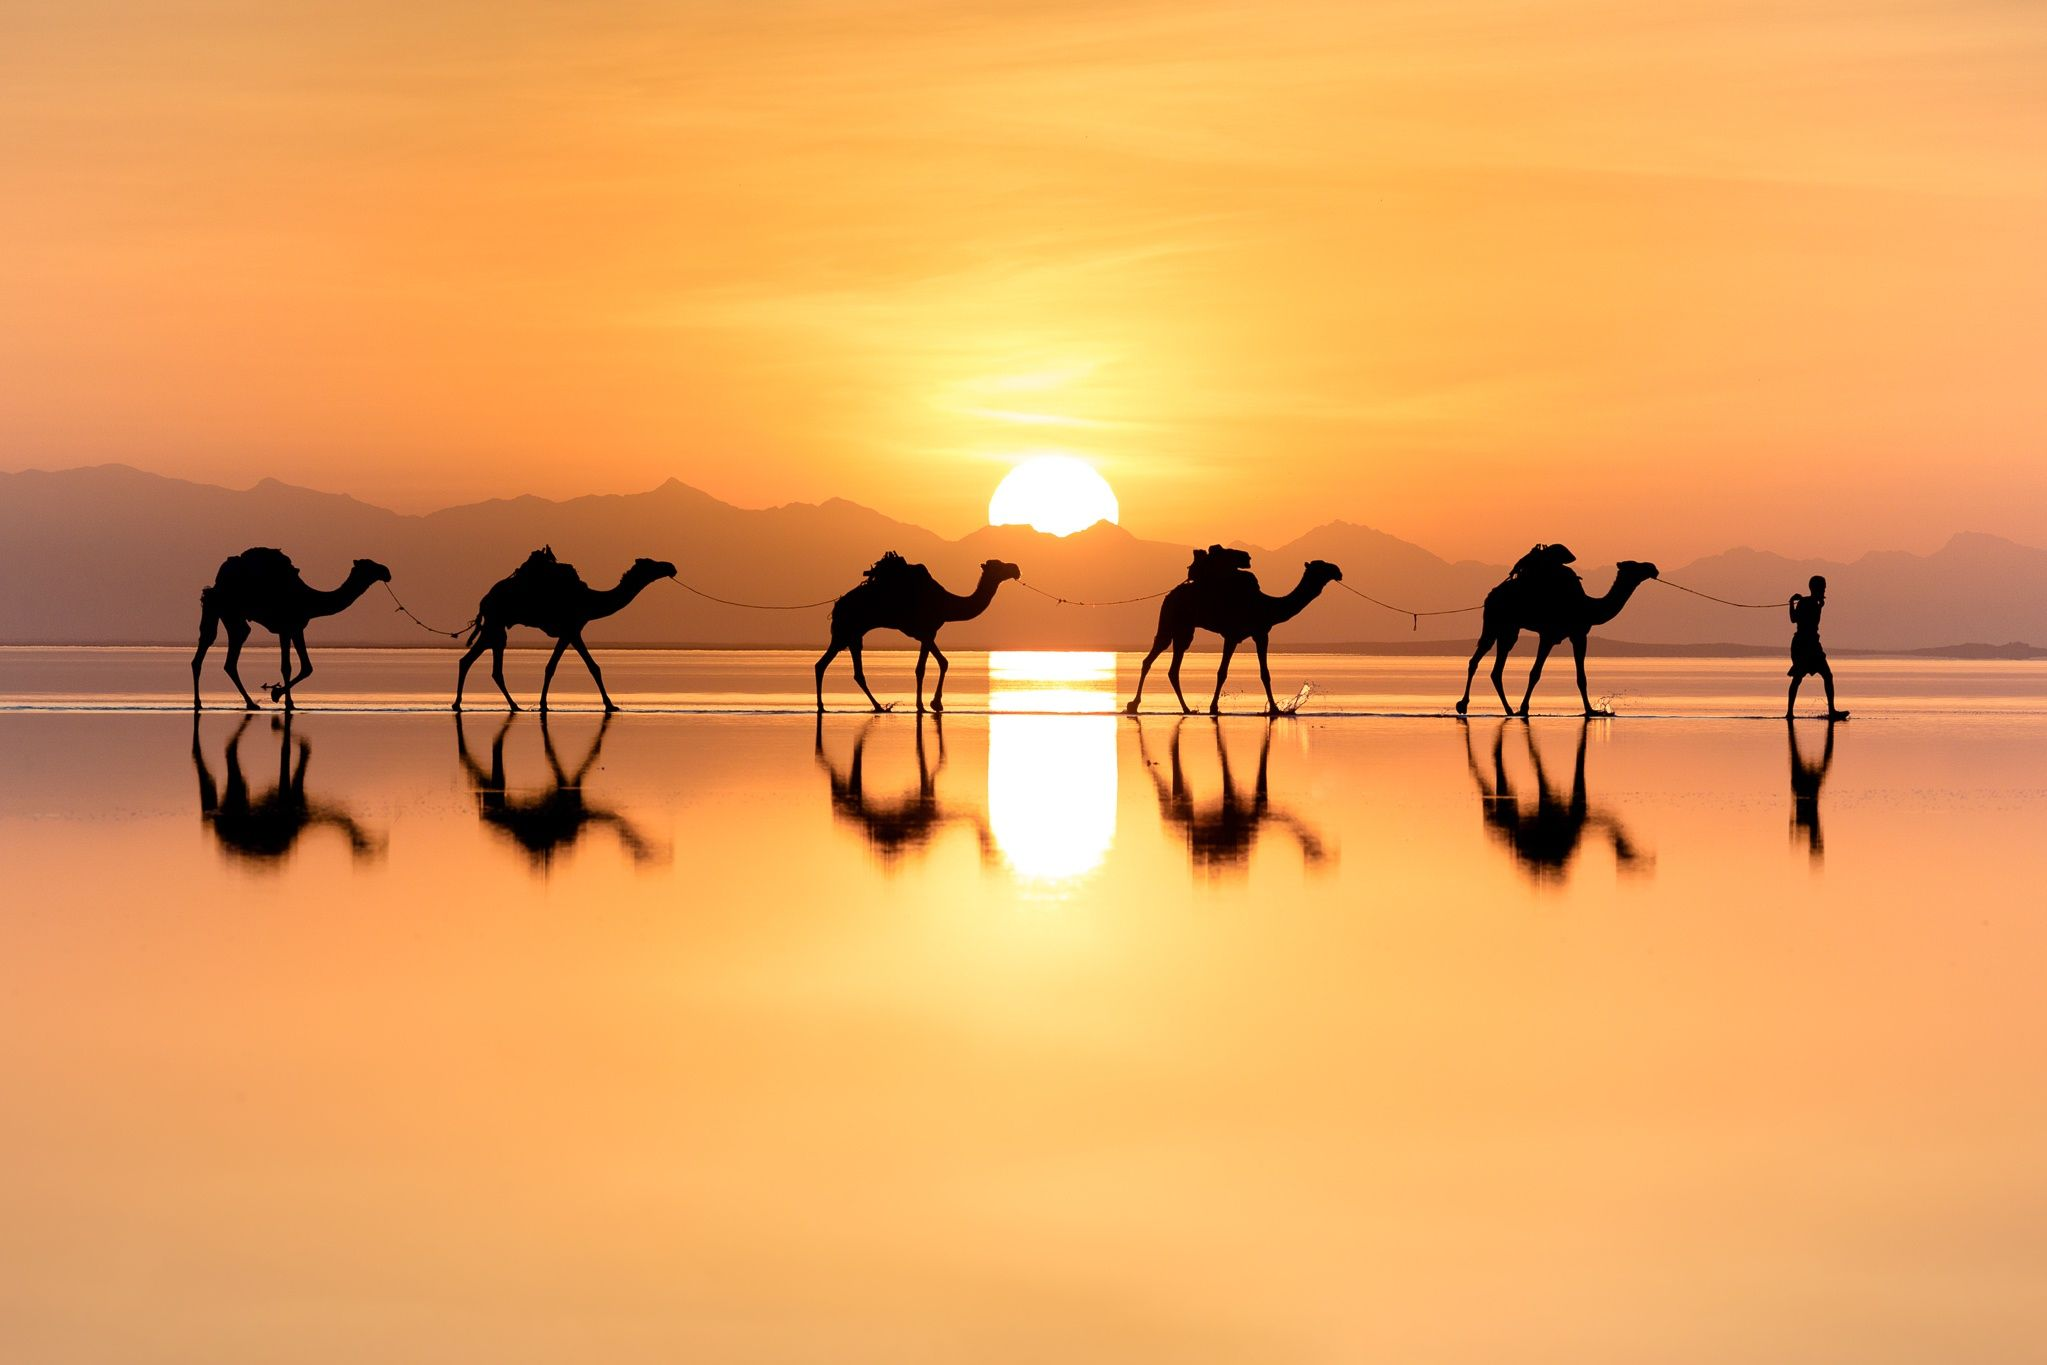 Caravan Train | Earth pictures, Photo, Sunset pictures